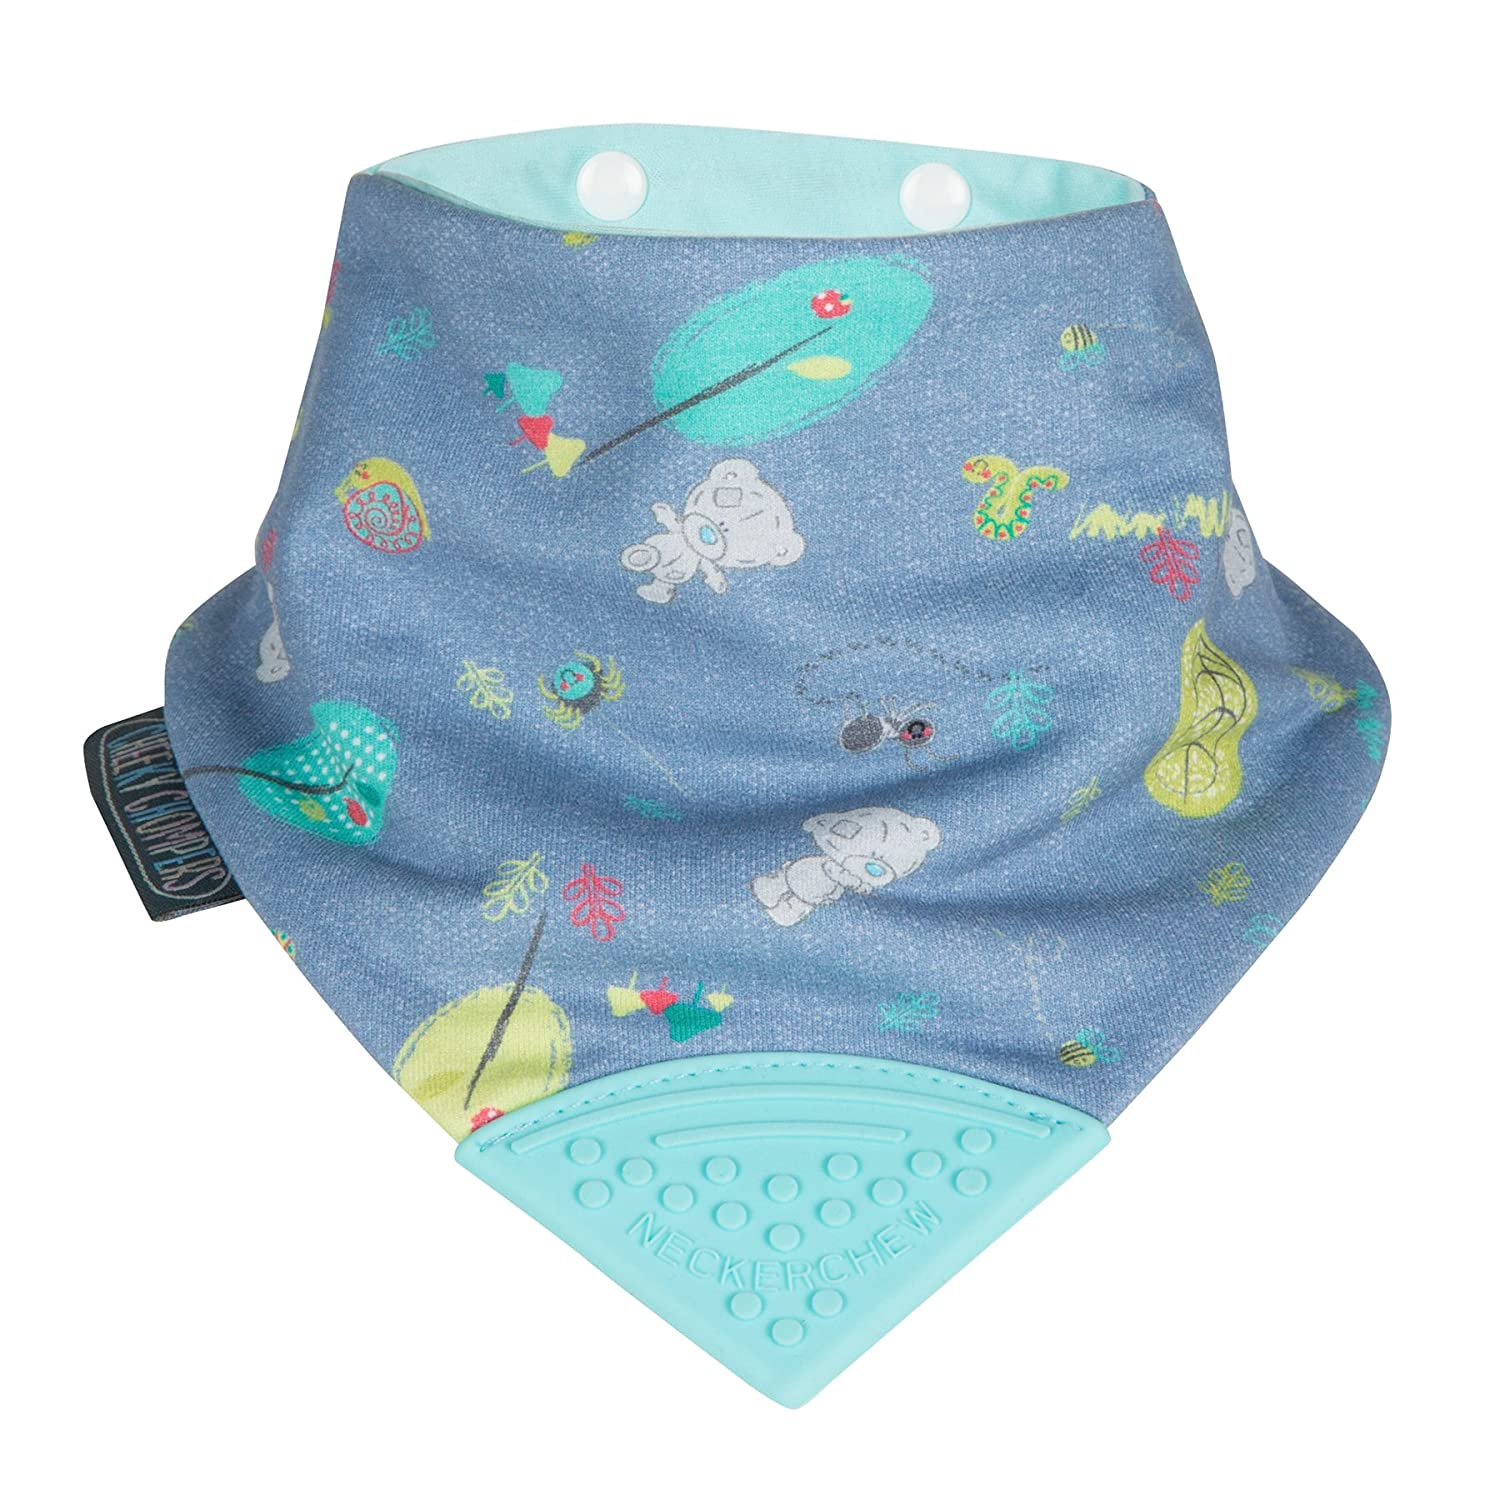 Cheeky Chompers CC025 Neckerchew Bib, Blue/denim 710852